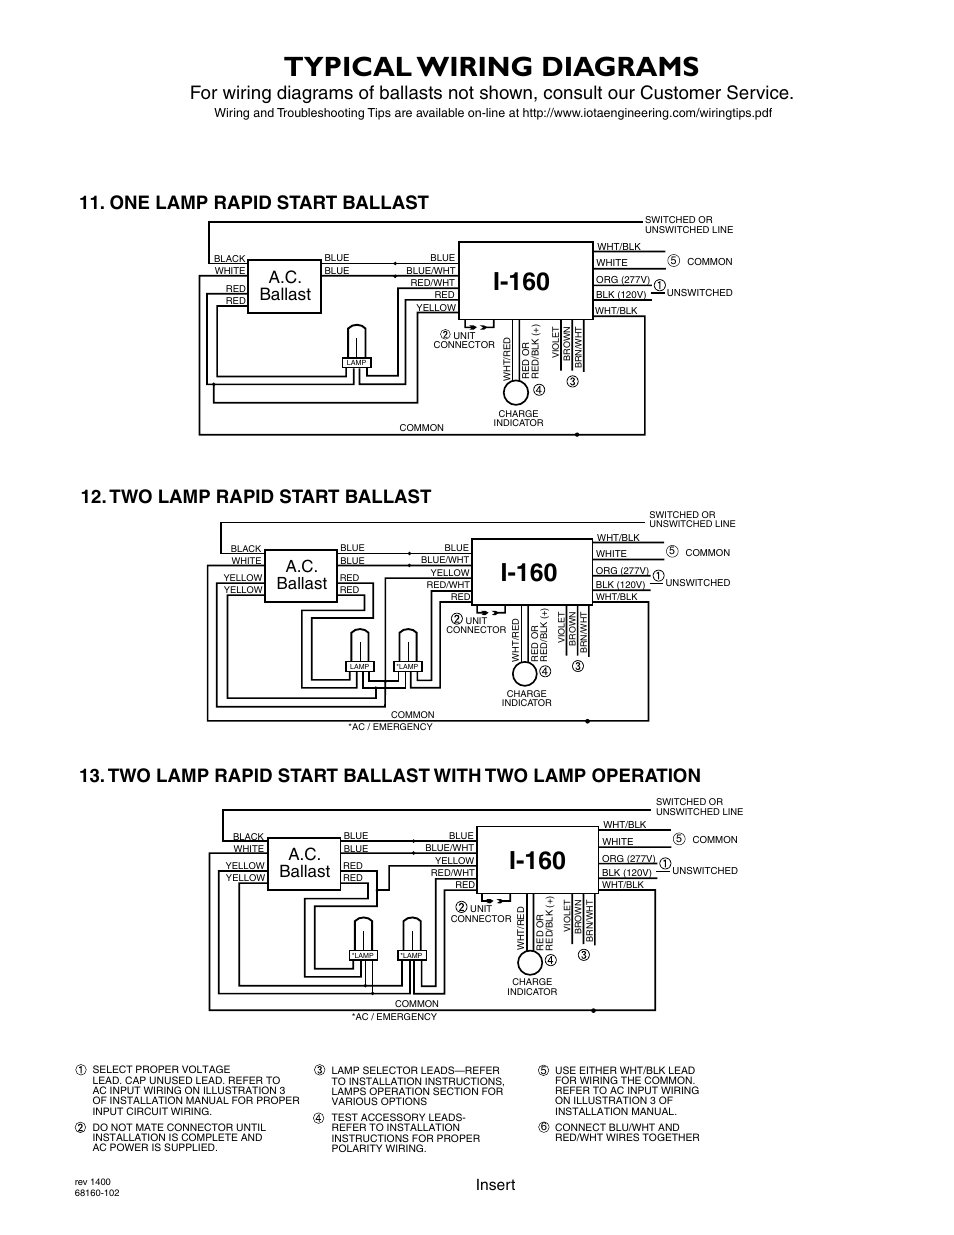 iota i 24 emergency ballast wiring diagram egg labeled help on a with fewer terminals rlt small resolution of typical diagrams 160 c user manual page